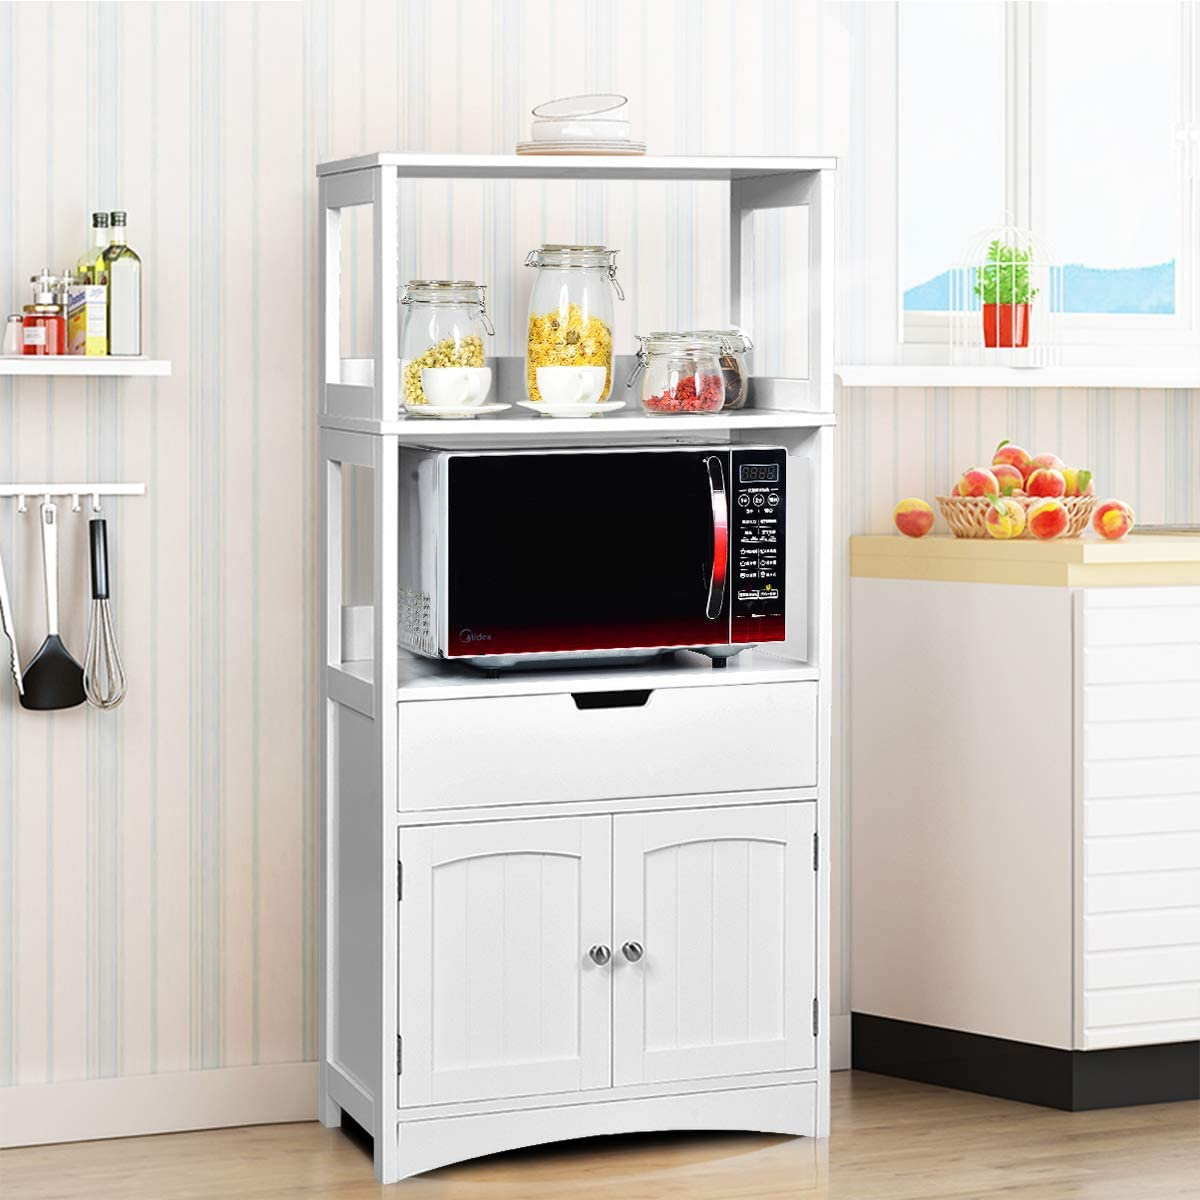 Tangkula Storage Cabinet for Kitchen